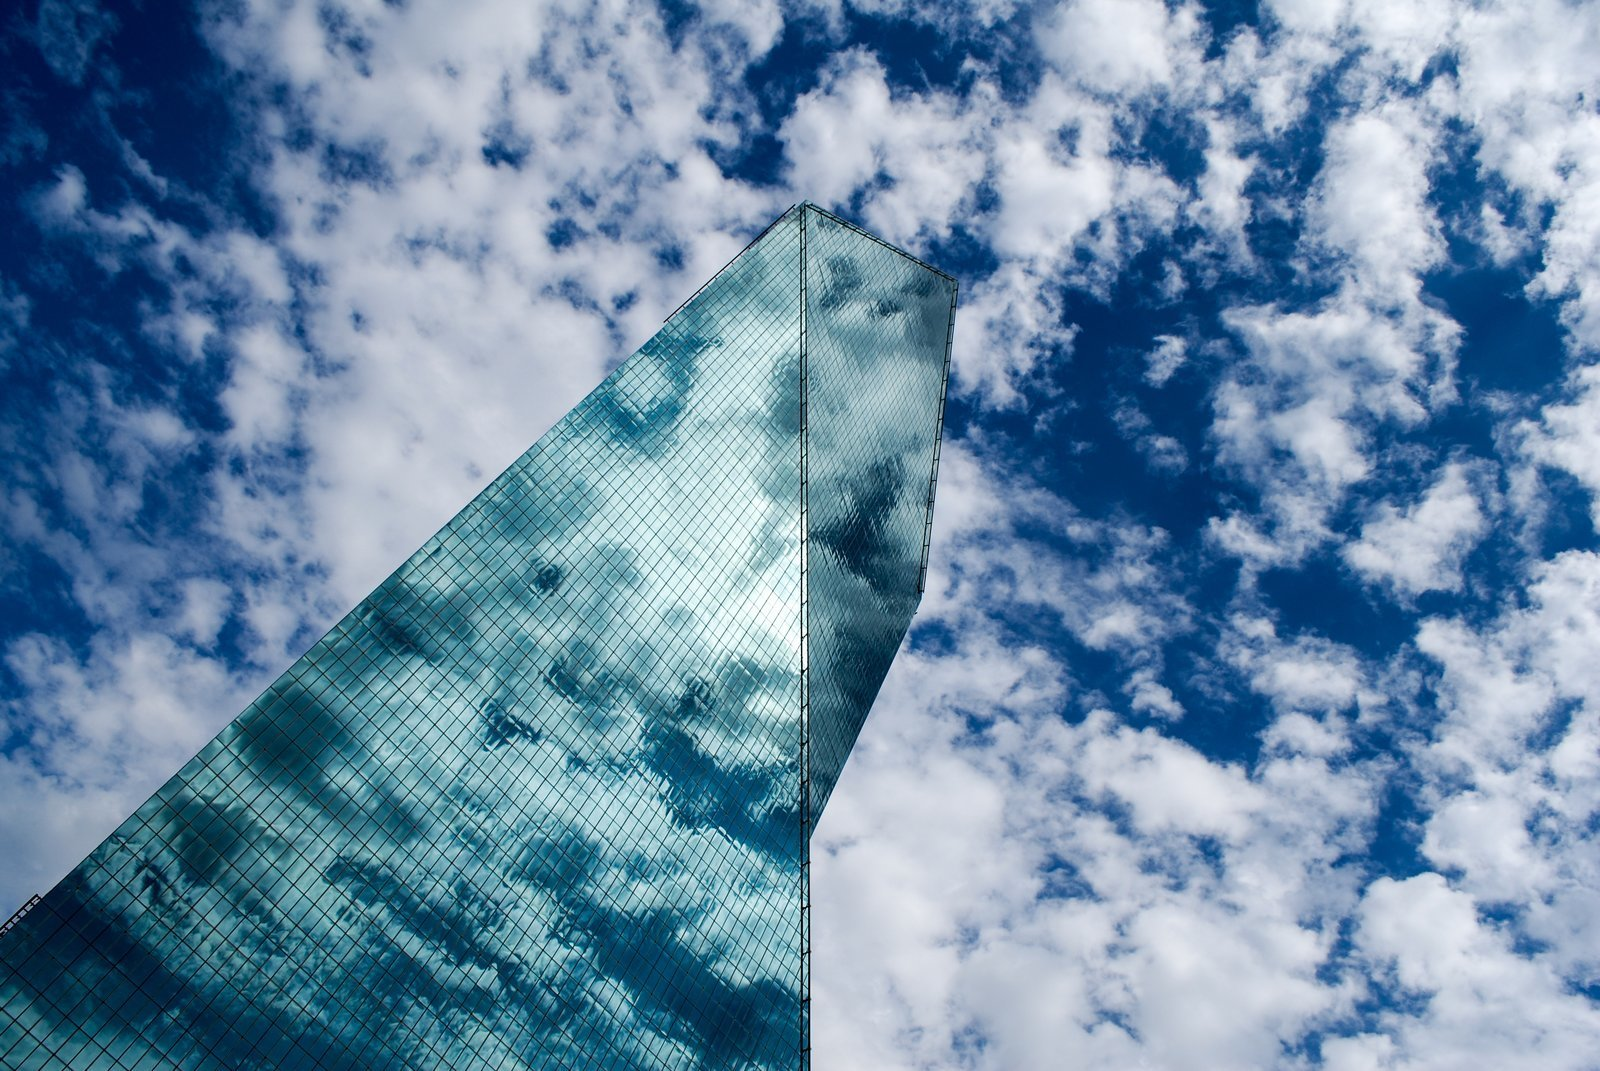 """I.M. Pei's Fountain Place is a 60-story modernist skyscraper in downtown Dallas, Texas. """"He used angles, triangles, planes, and prisms to create a seemingly impossible visual space with this building,"""" says photographer Nikola Olic, who took this image titled  Photo 3 of 12 in 10 I.M. Pei Buildings We Love"""